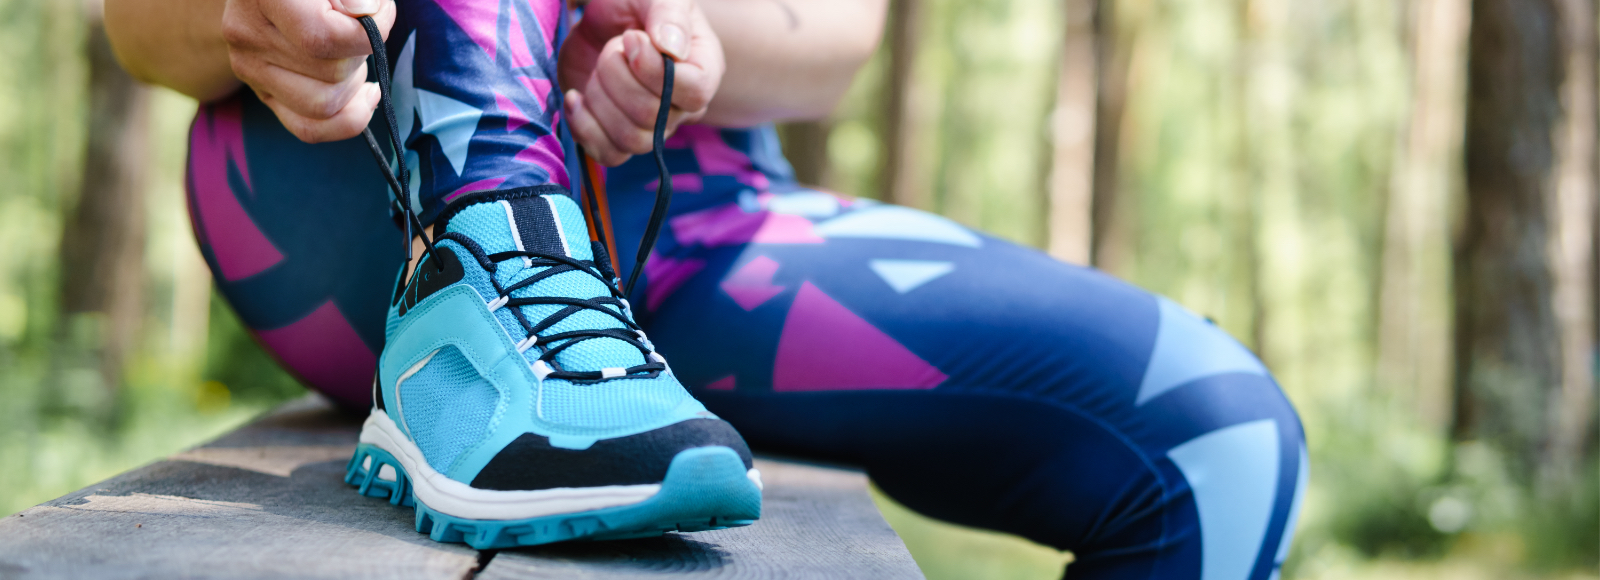 A woman in brightly colored running tights laces up her running shoes with Sof Sole® shoe laces.